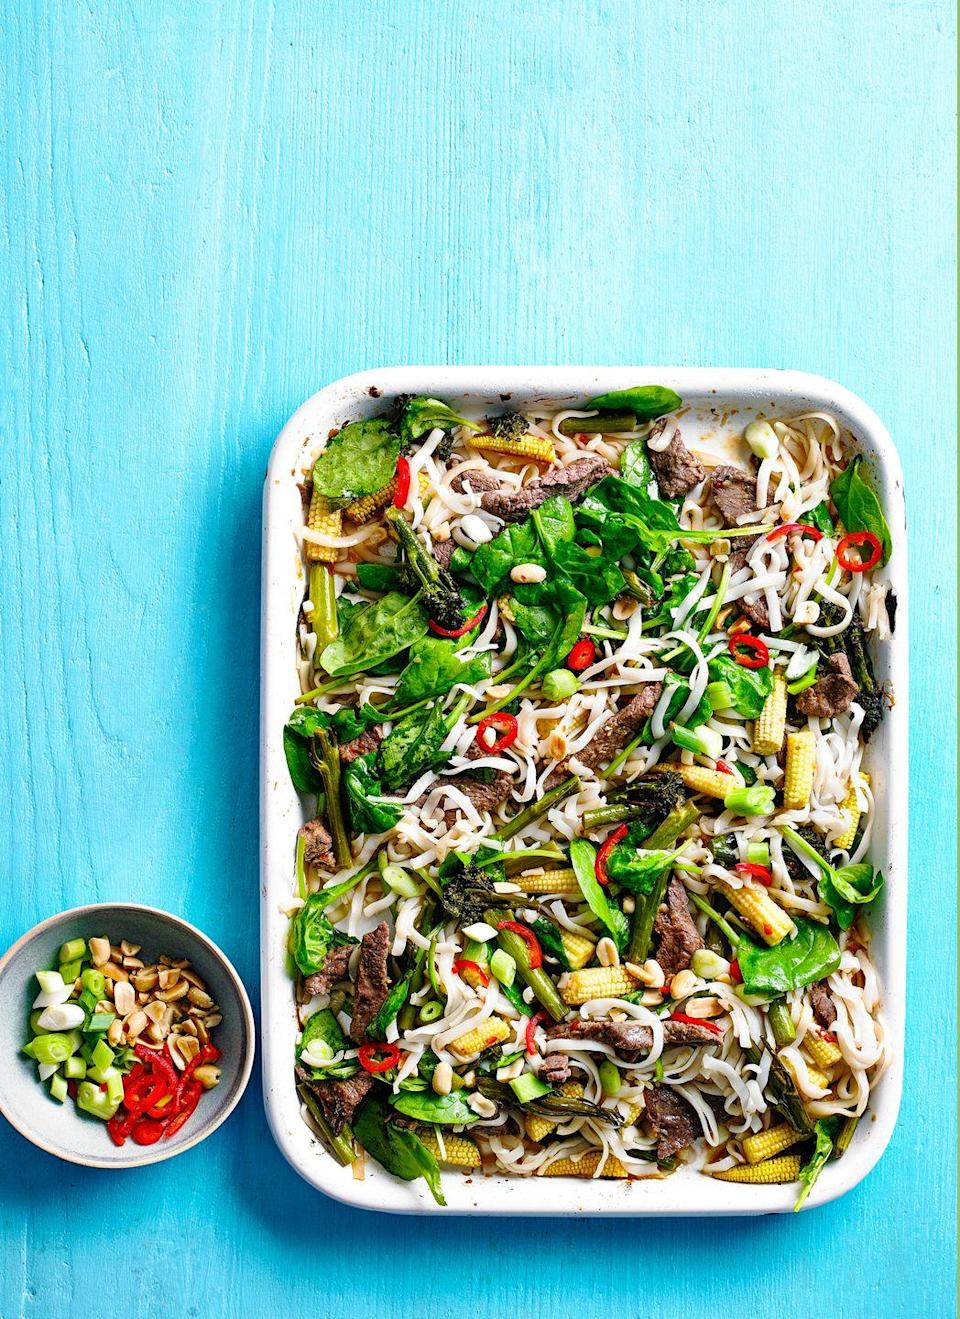 """<p>Who knew? Noodles in a roasting tin! We've used rump steak as it is flavoursome and kinder on the budget, but splash out on fillet if you like.</p><p><strong>Recipe: <a href=""""https://www.goodhousekeeping.com/uk/food/recipes/a29101897/chilli-beef-noodles-traybake/"""" rel=""""nofollow noopener"""" target=""""_blank"""" data-ylk=""""slk:Chilli Beef Noodles Traybake"""" class=""""link rapid-noclick-resp"""">Chilli Beef Noodles Traybake</a></strong></p>"""